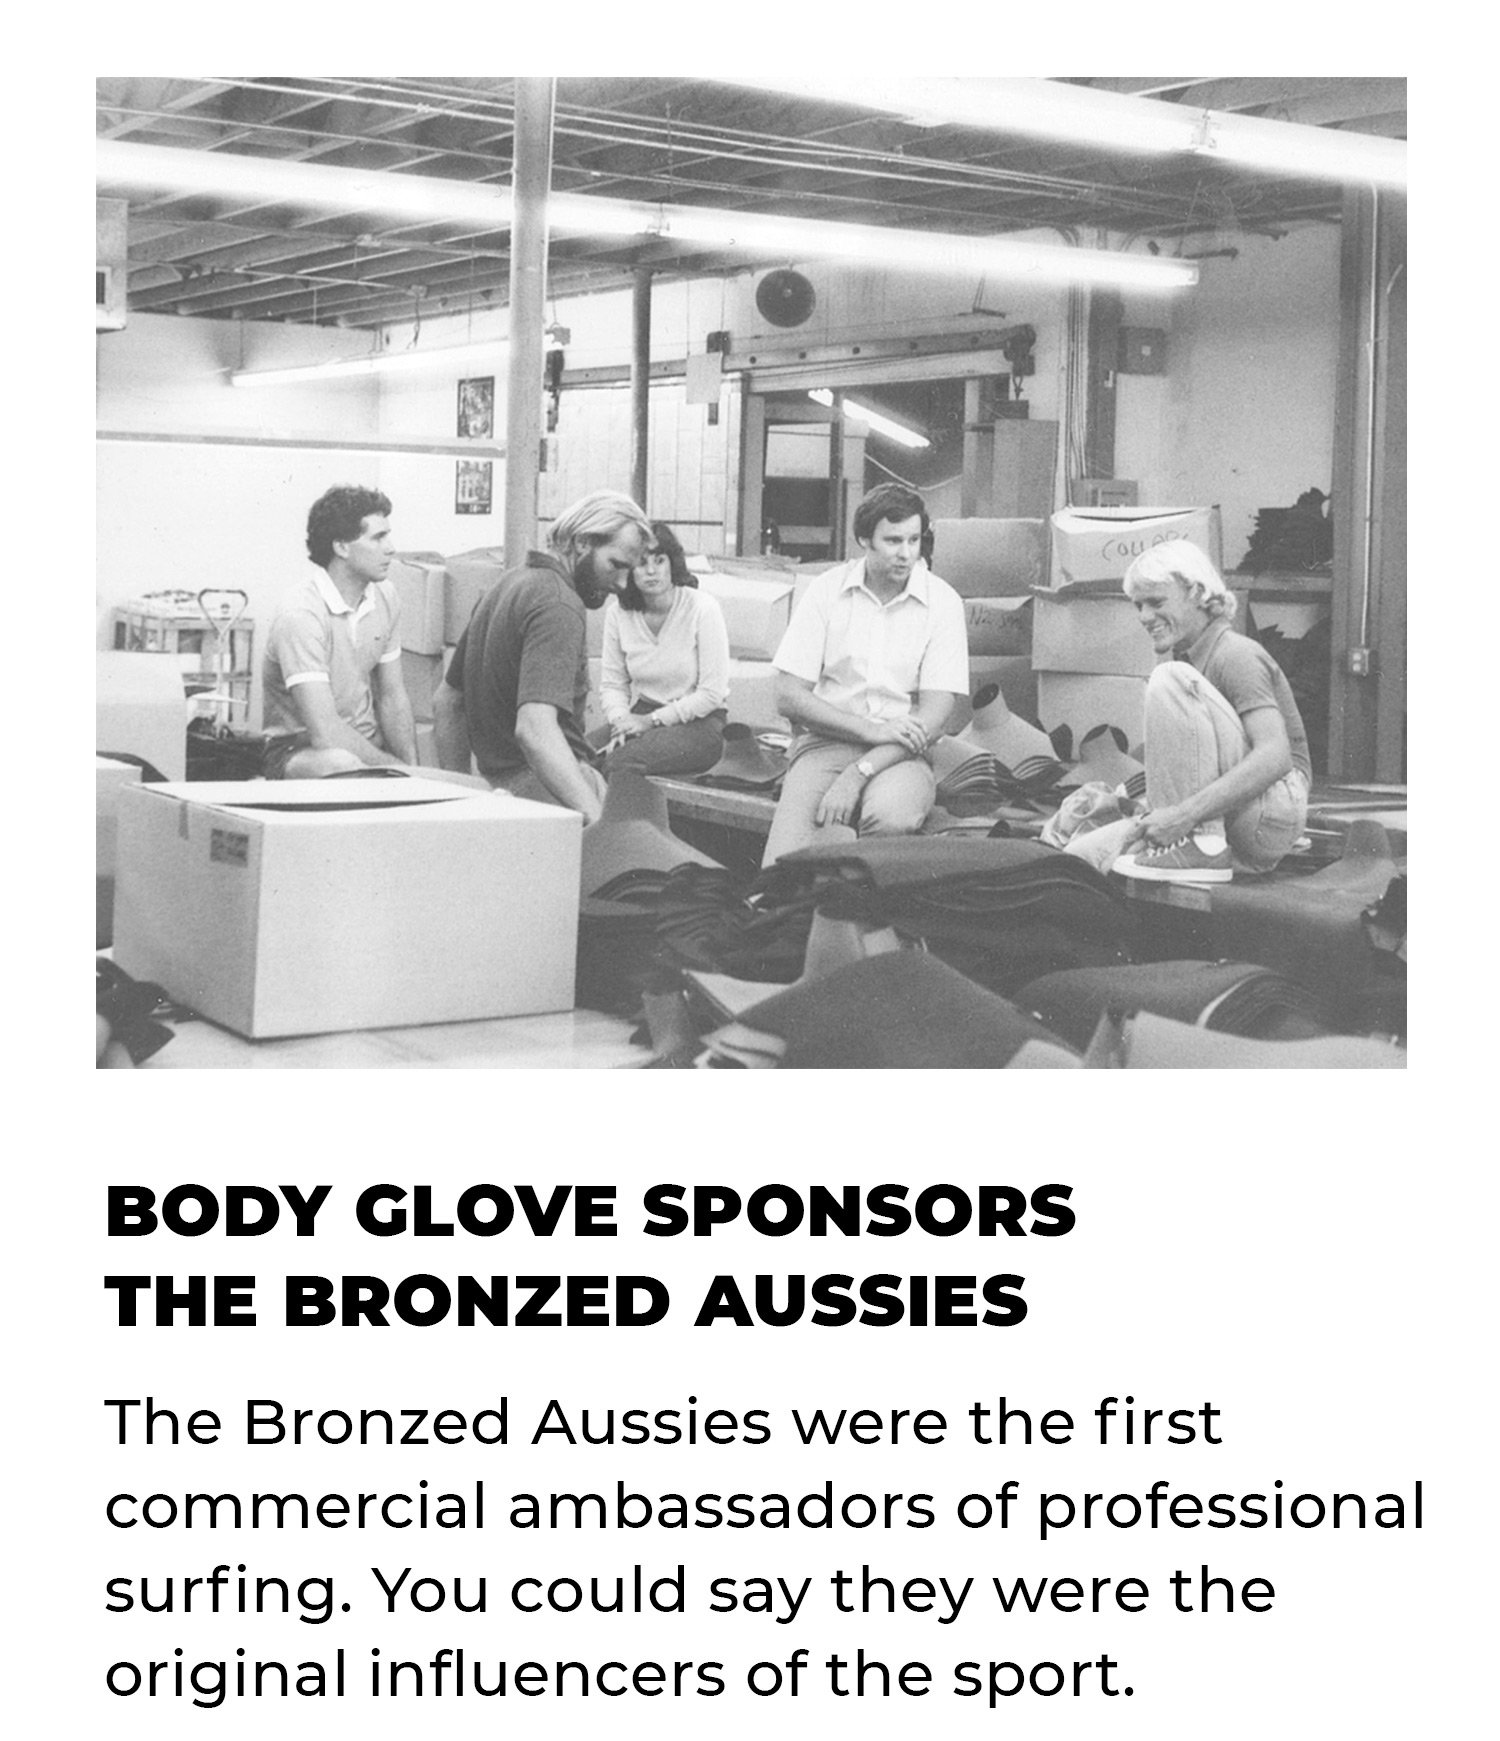 Body Glove Sponsors the Bronzed Aussies | The Bronzed Aussies were the first commercial ambassadors of professional surfing. You could say they were the original influencers of the sport.